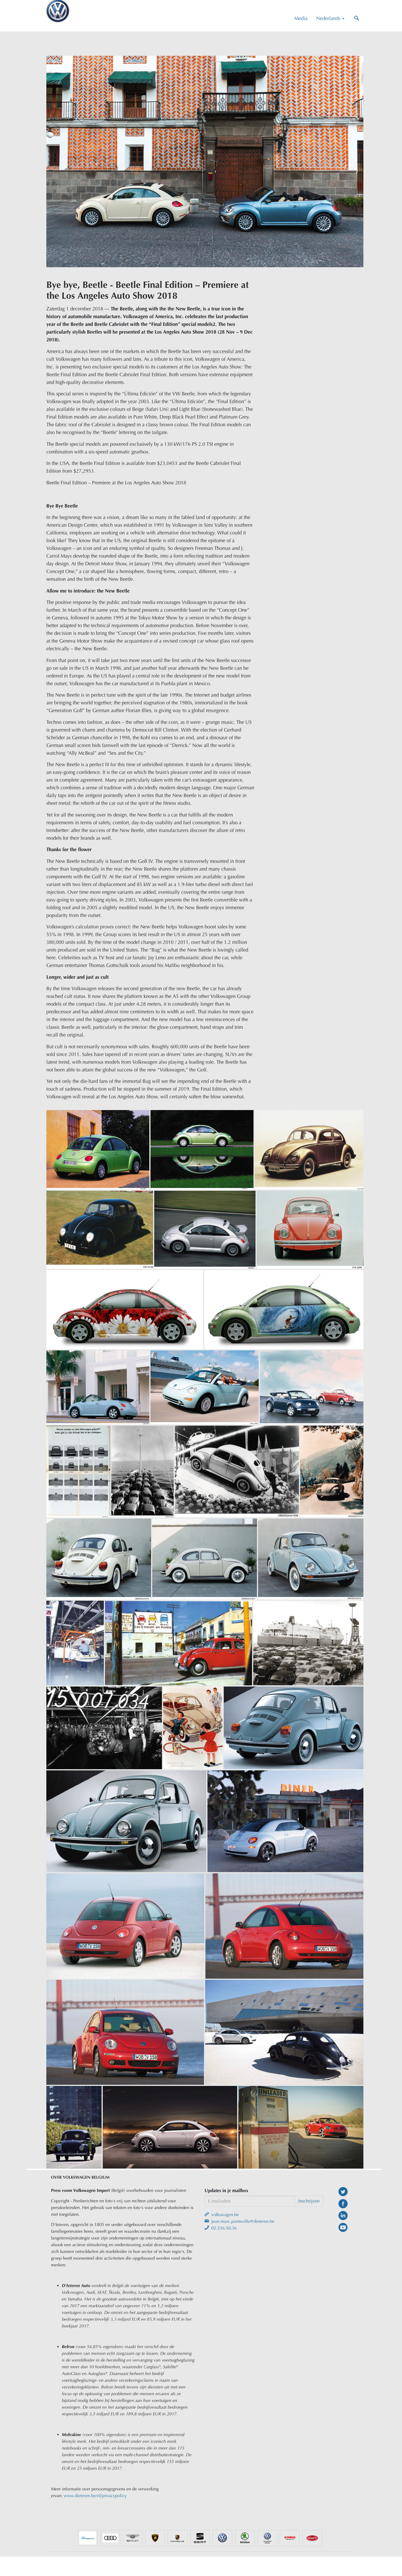 Bye bye, Beetle - Beetle Final Edition – Premiere at the Los Angeles Auto Show 2018